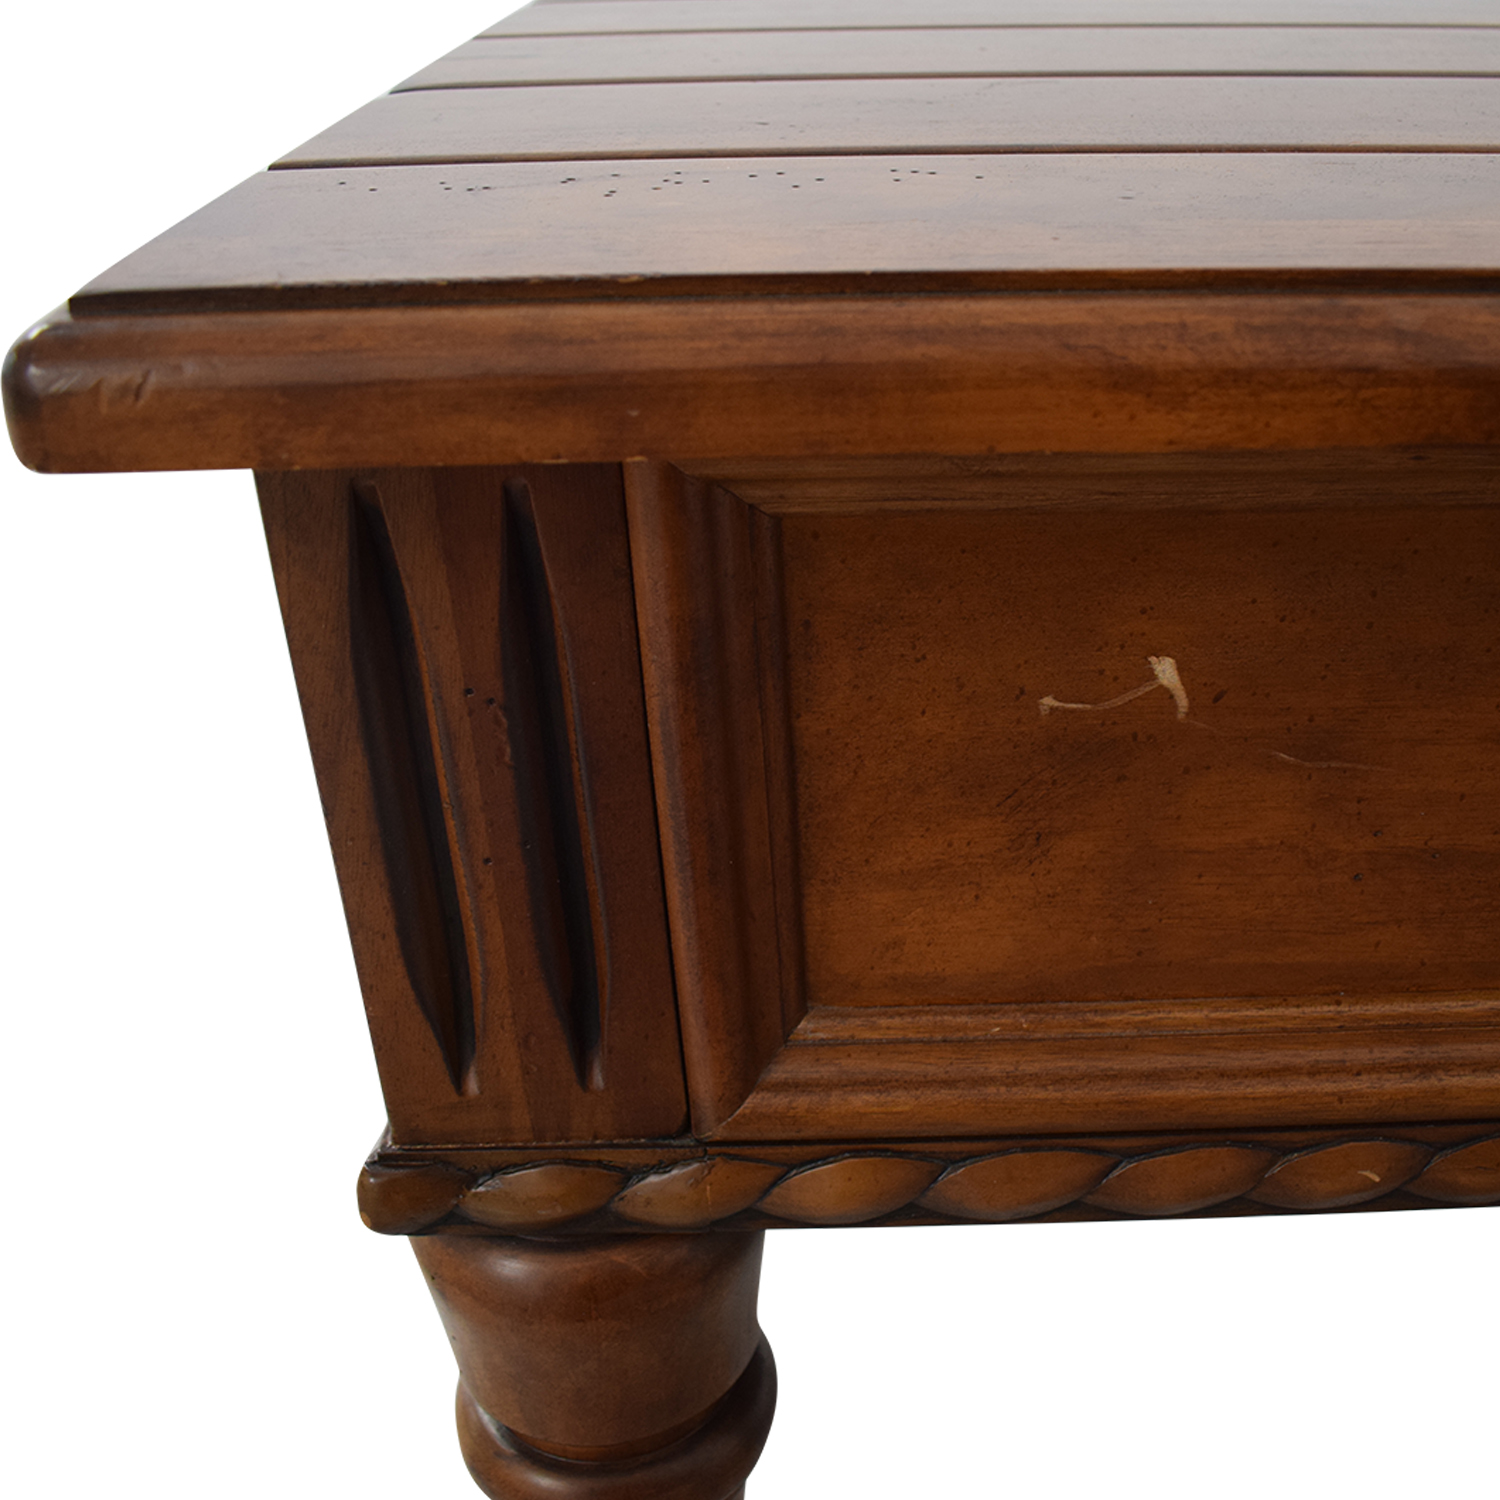 Thomasville Ernest Hemingway Collection Single Drawer End Tables / End Tables